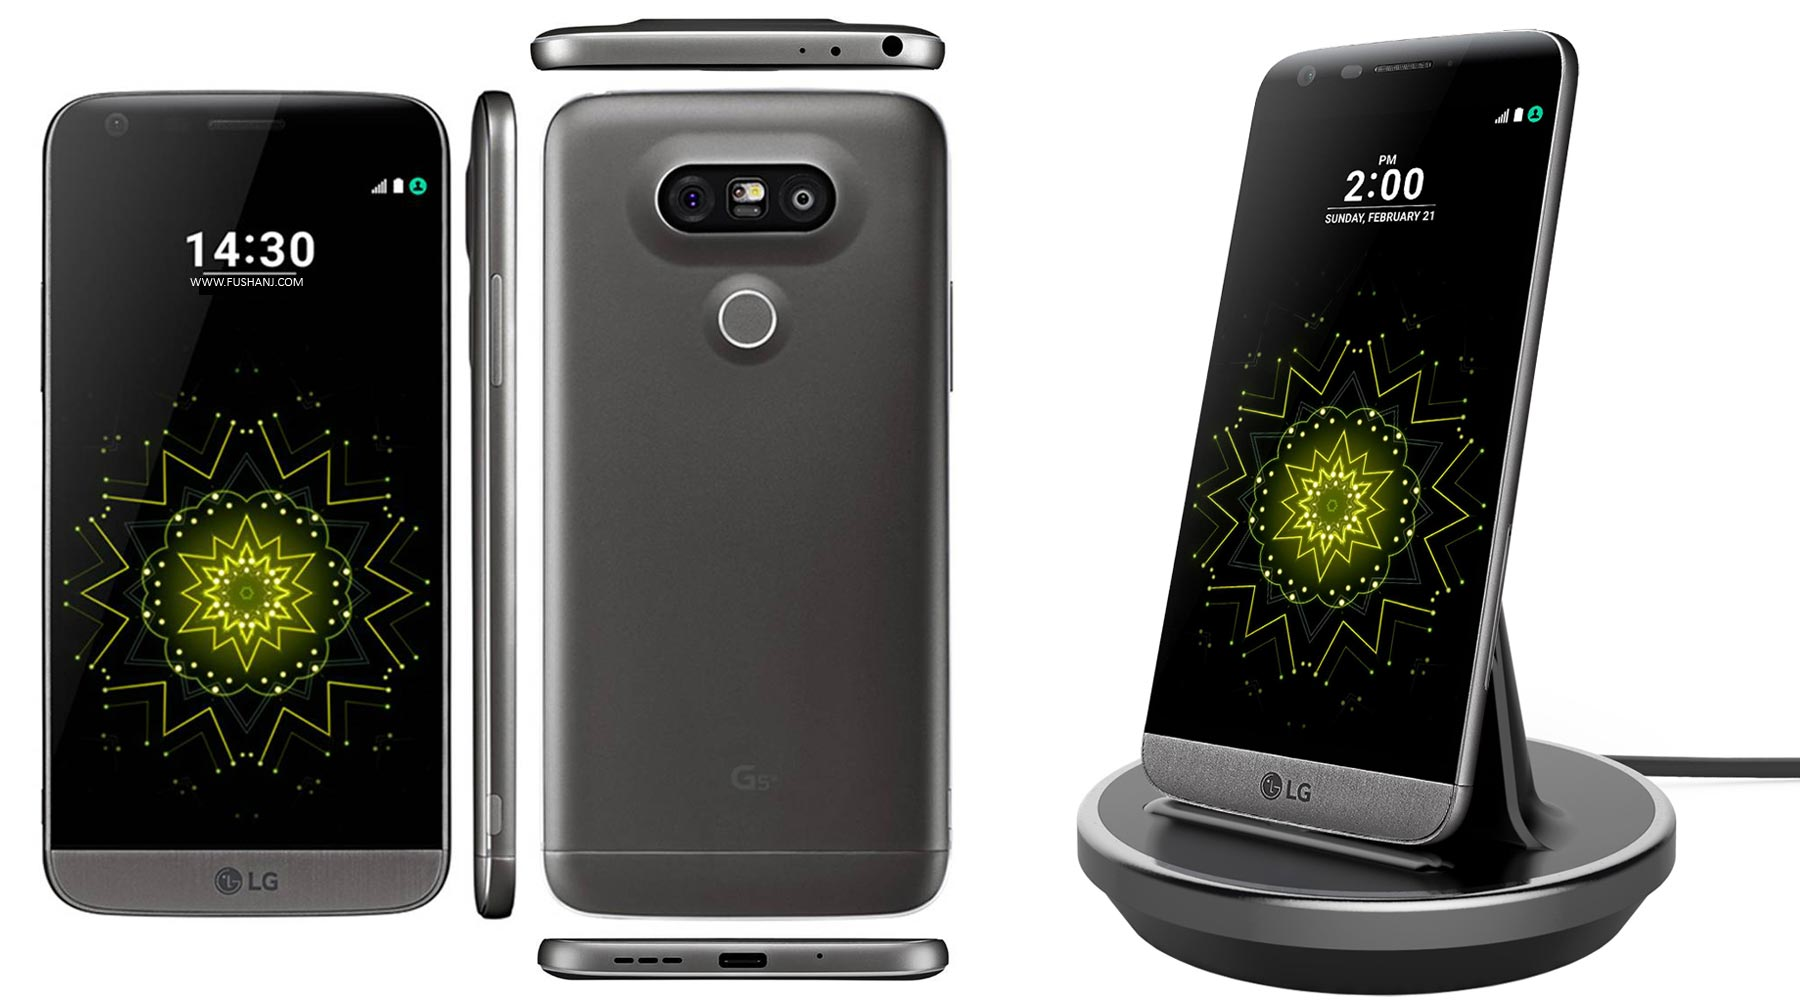 lg-g5-display-size-price-dubai-abu-dhabi-mobile-charger